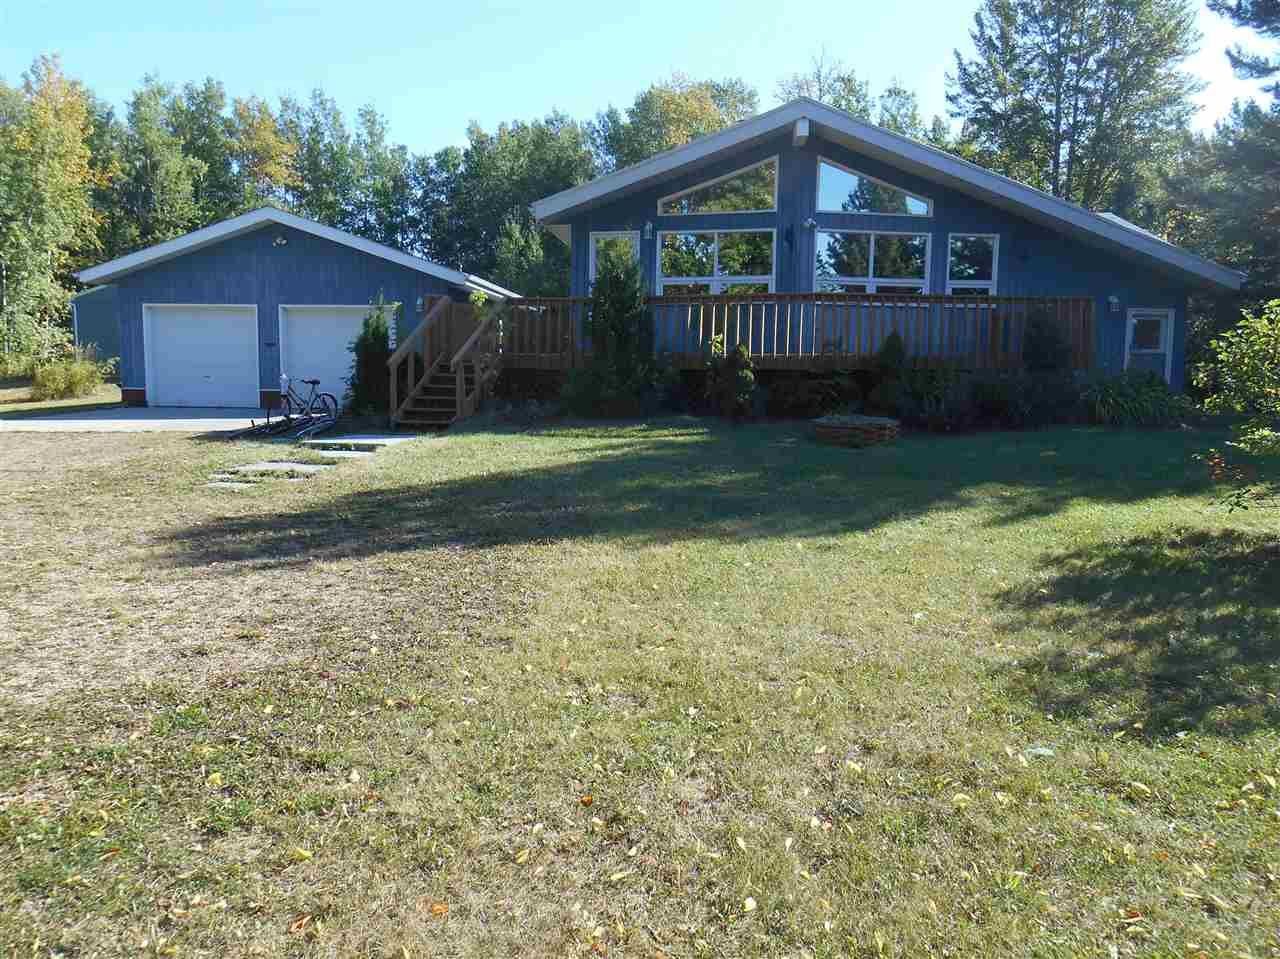 Main Photo: 5102 35 Street: Rural Wetaskiwin County House for sale : MLS® # E4082259